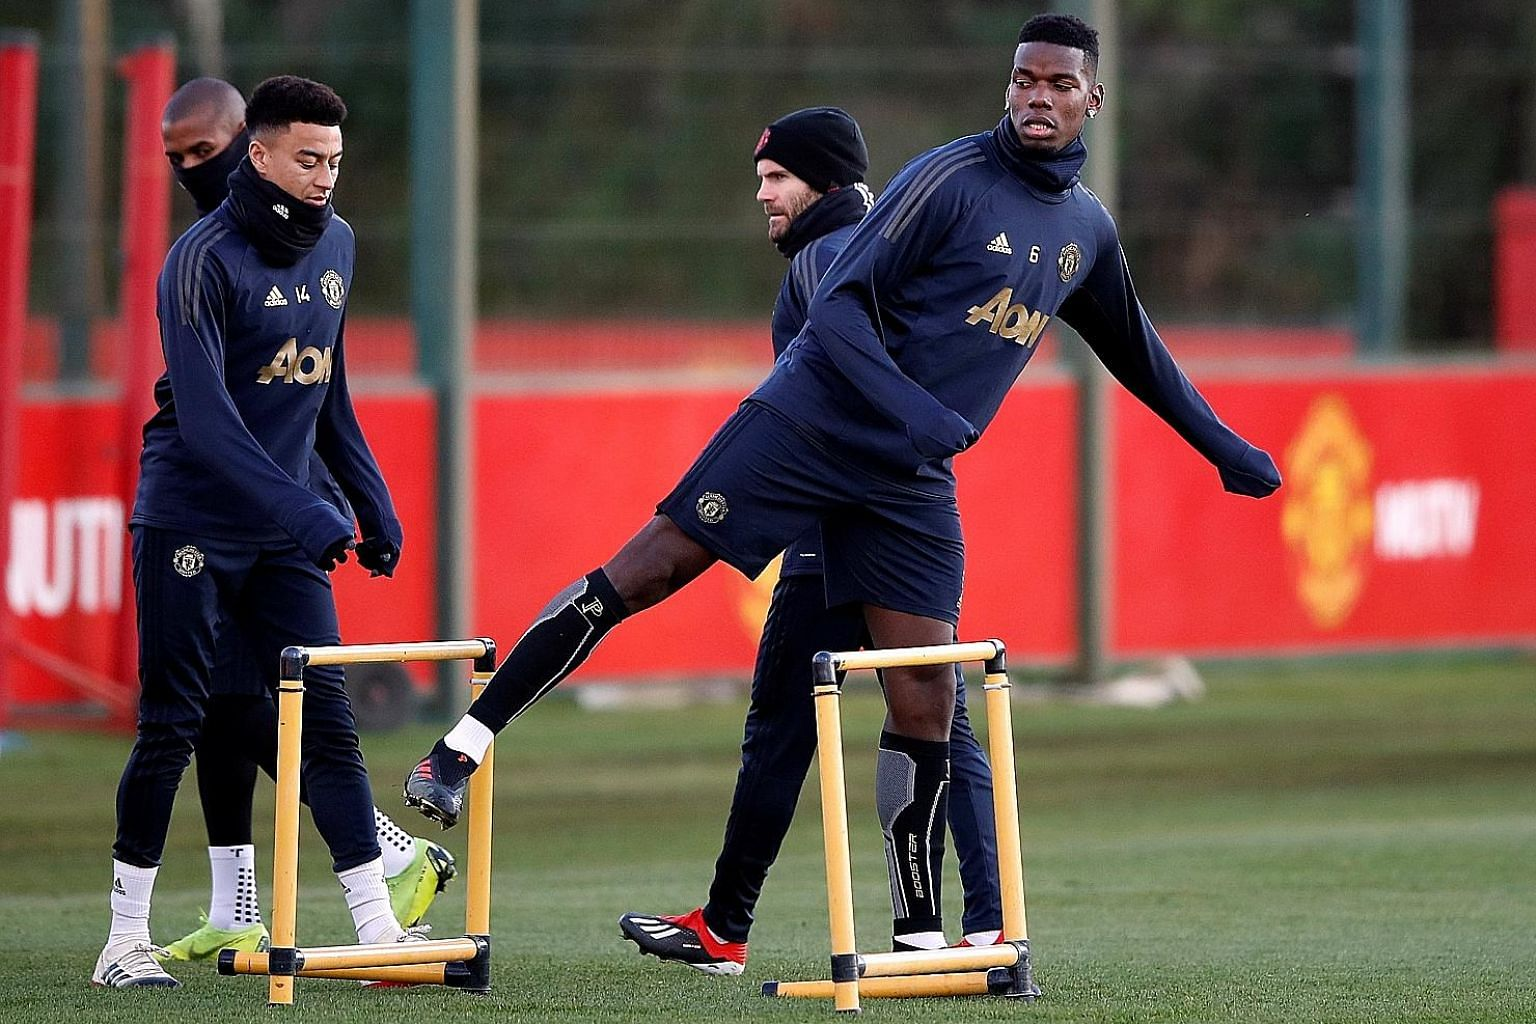 United's Paul Pogba, with Jesse Lingard (far left) and Juan Mata in training. Manager Jose Mourinho has not held back in his criticism of his underachieving players in recent weeks.